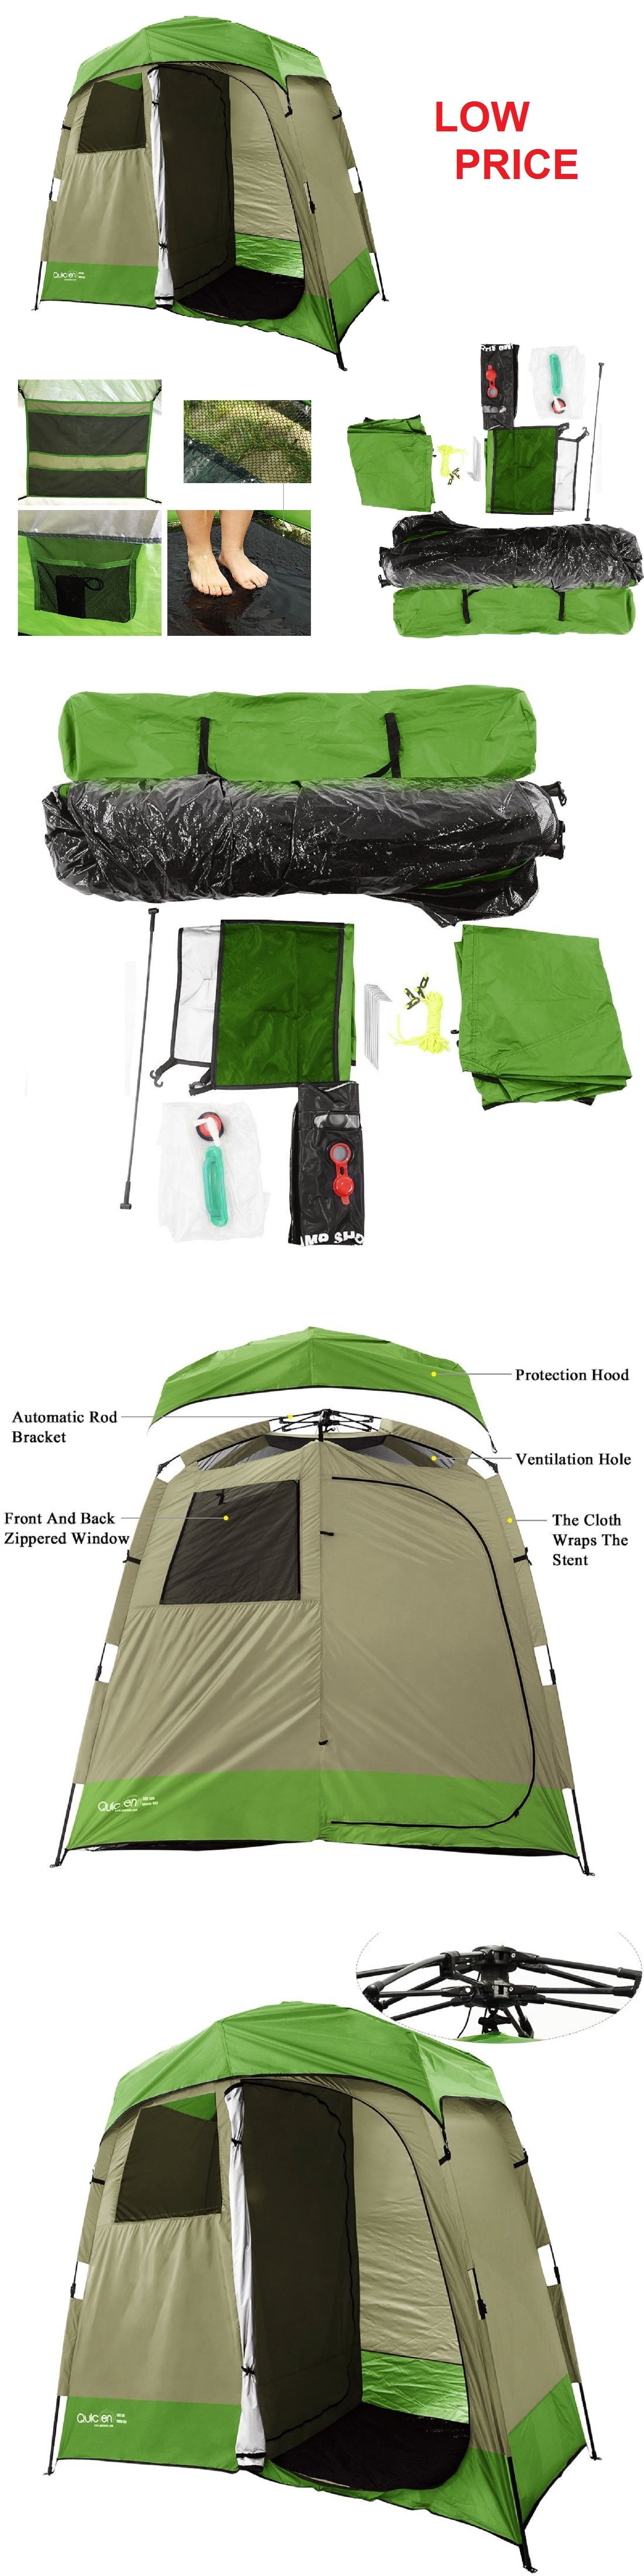 Portable Showers and Accessories 181396: 2 Room Camping Shower Tent ...